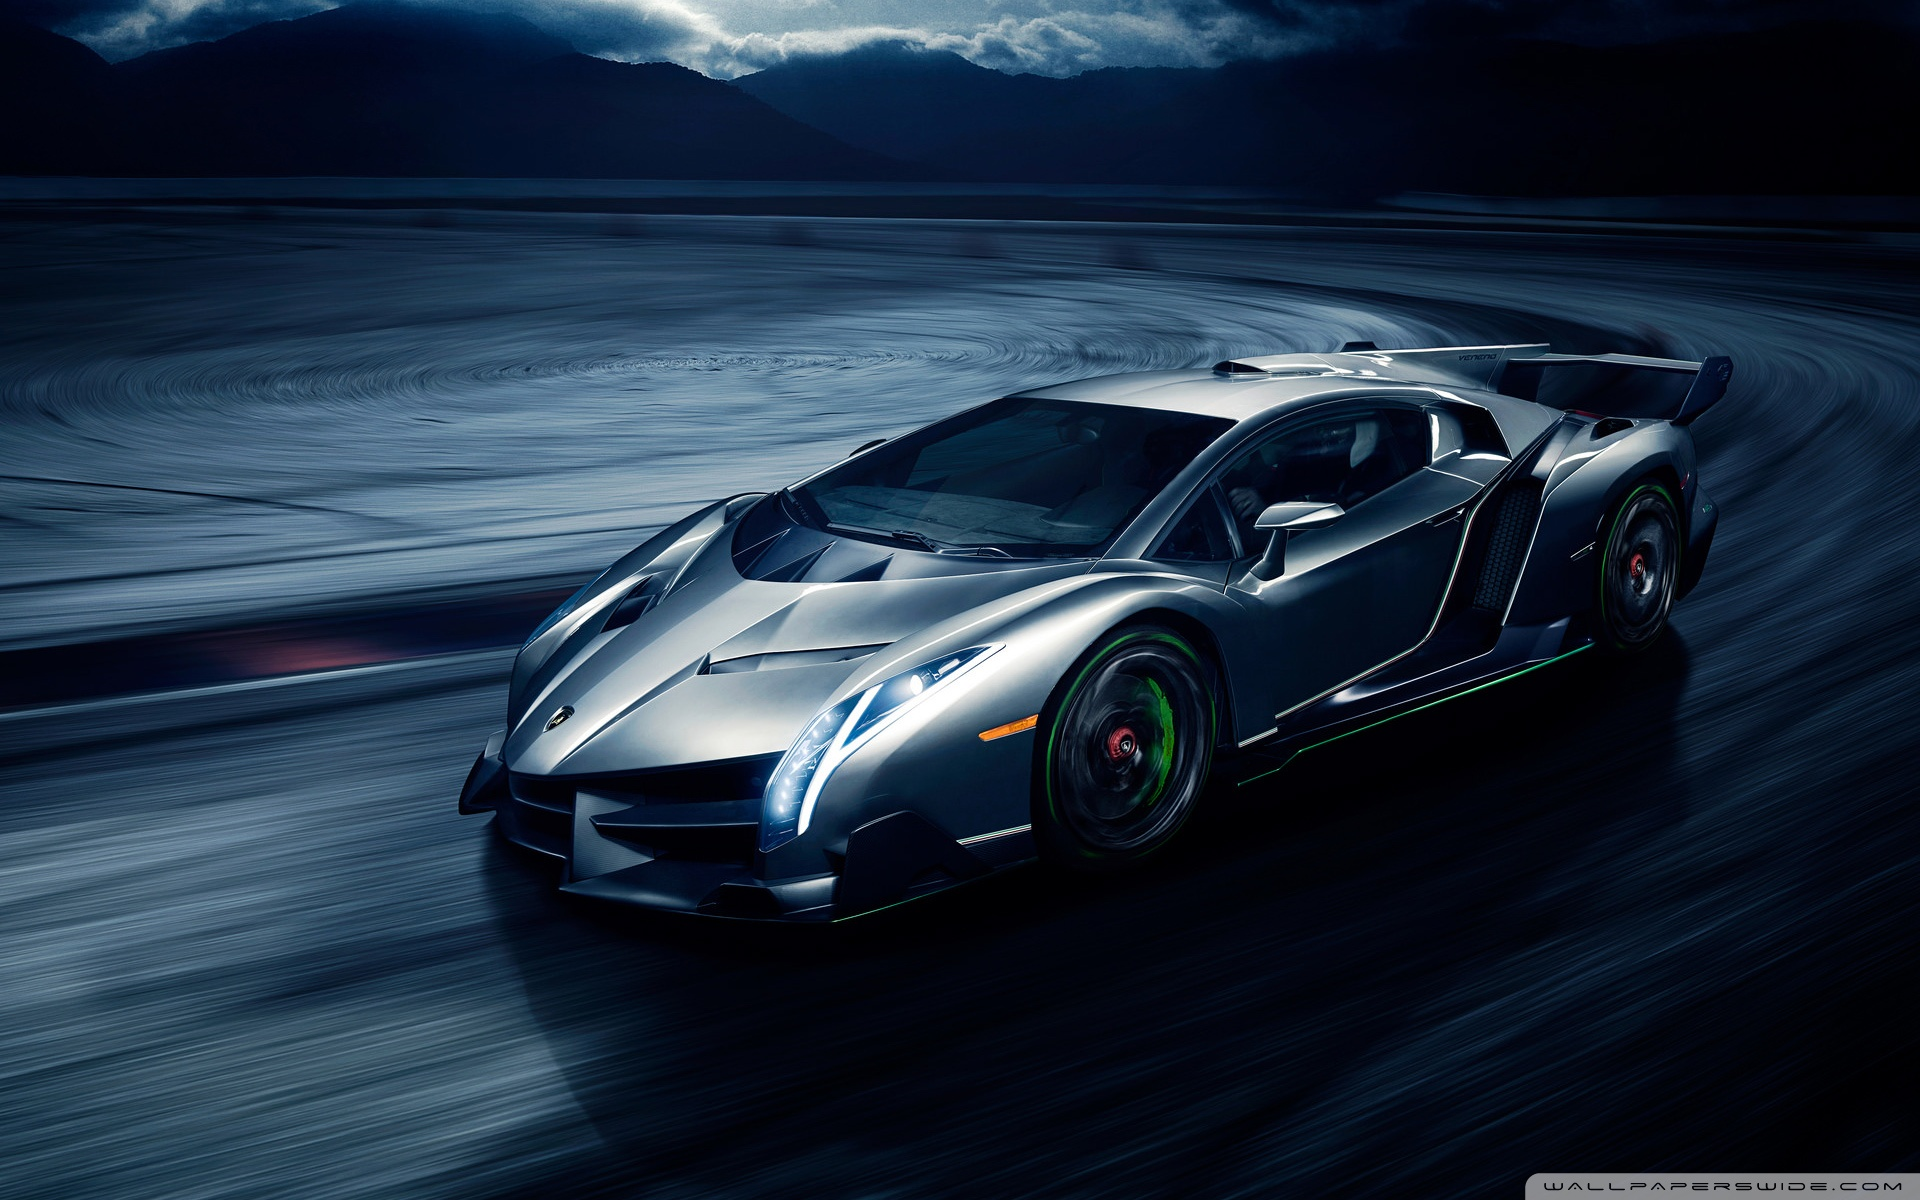 WallpapersWide.com | Lamborghini HD Desktop Wallpapers for ... src